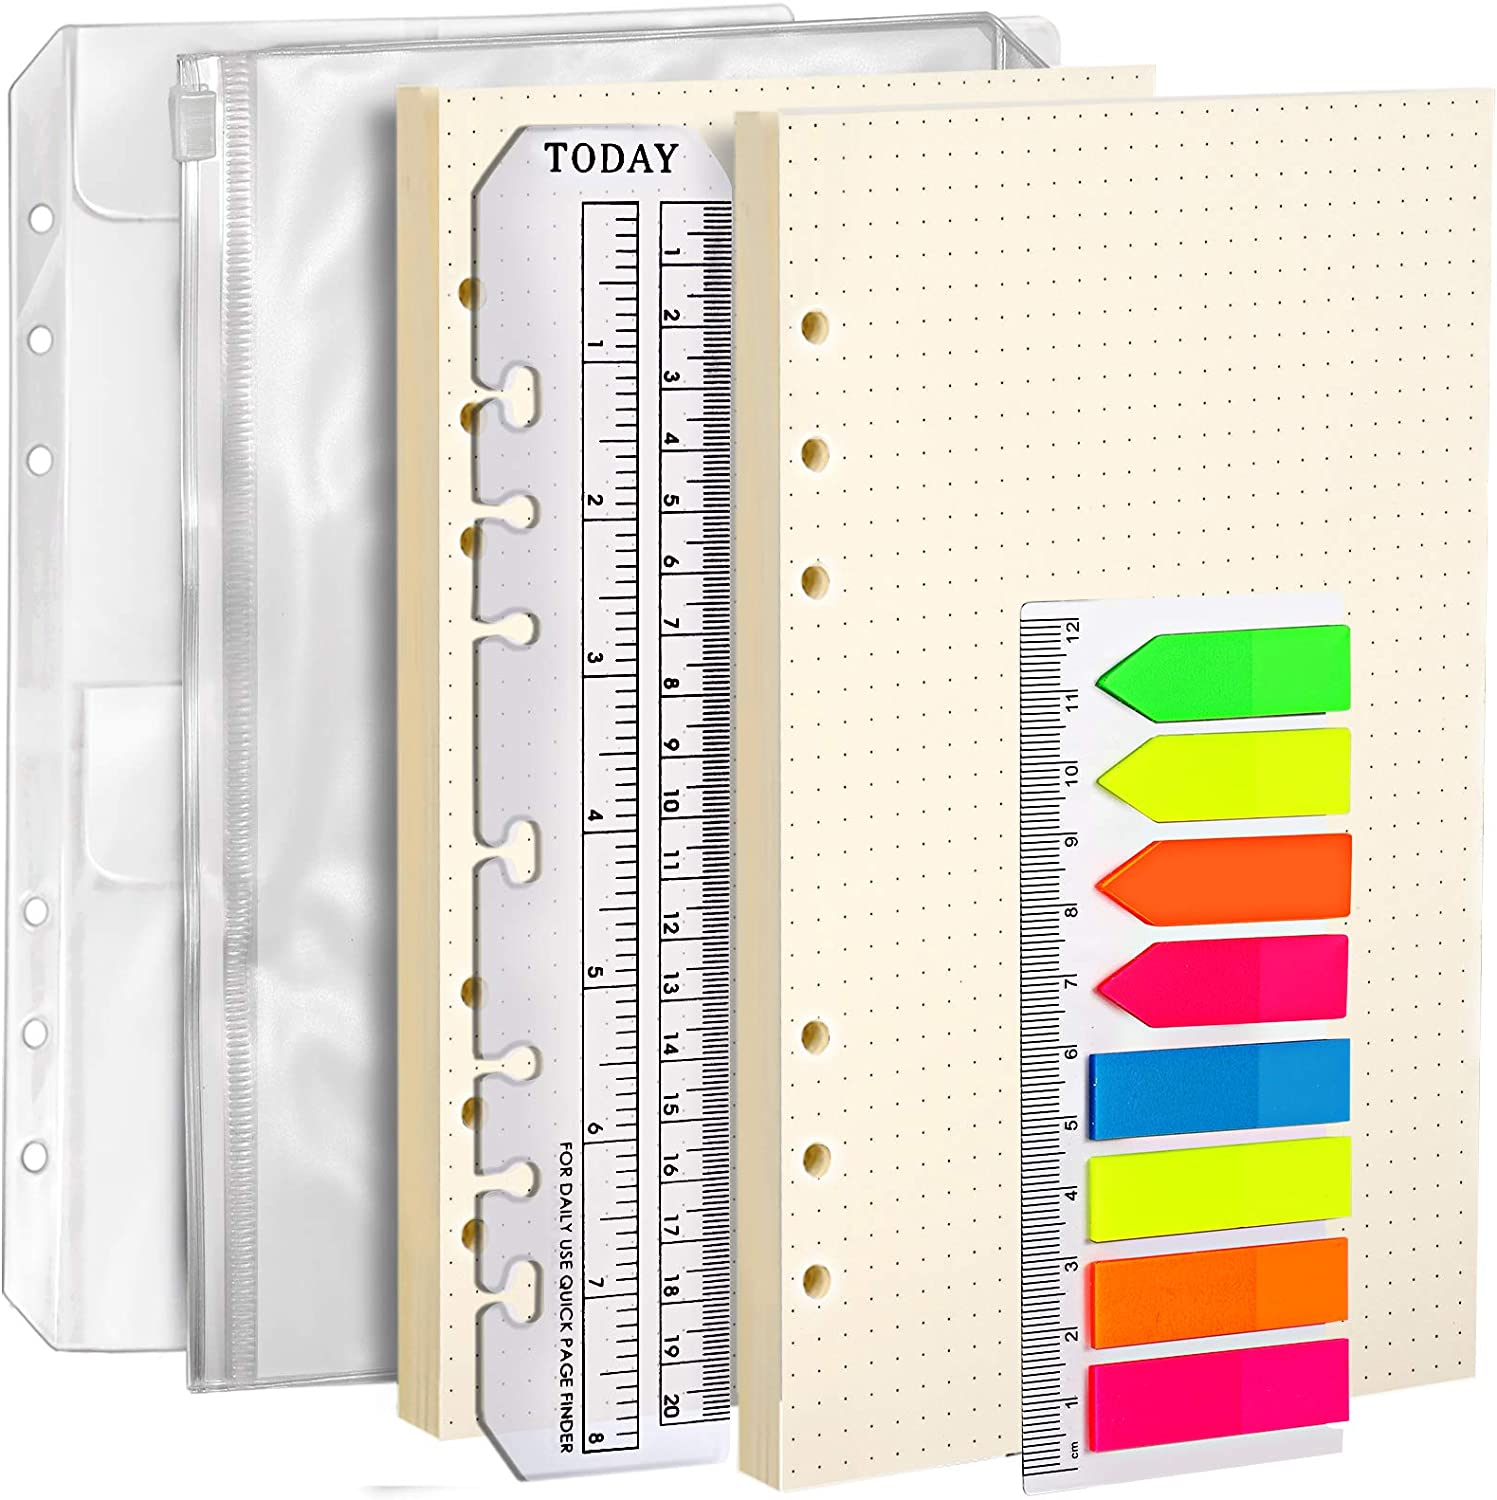 2 Pack A5 Refill Paper /& 2 Pieces A5 Loose-Leaf Pockets /& 1 Pack 160 Pieces Index Tabs with Ruler LEOBRO A5 6 Holes Refillable Craft Paper for 6-Ring Binder Leather Journal Notebooks